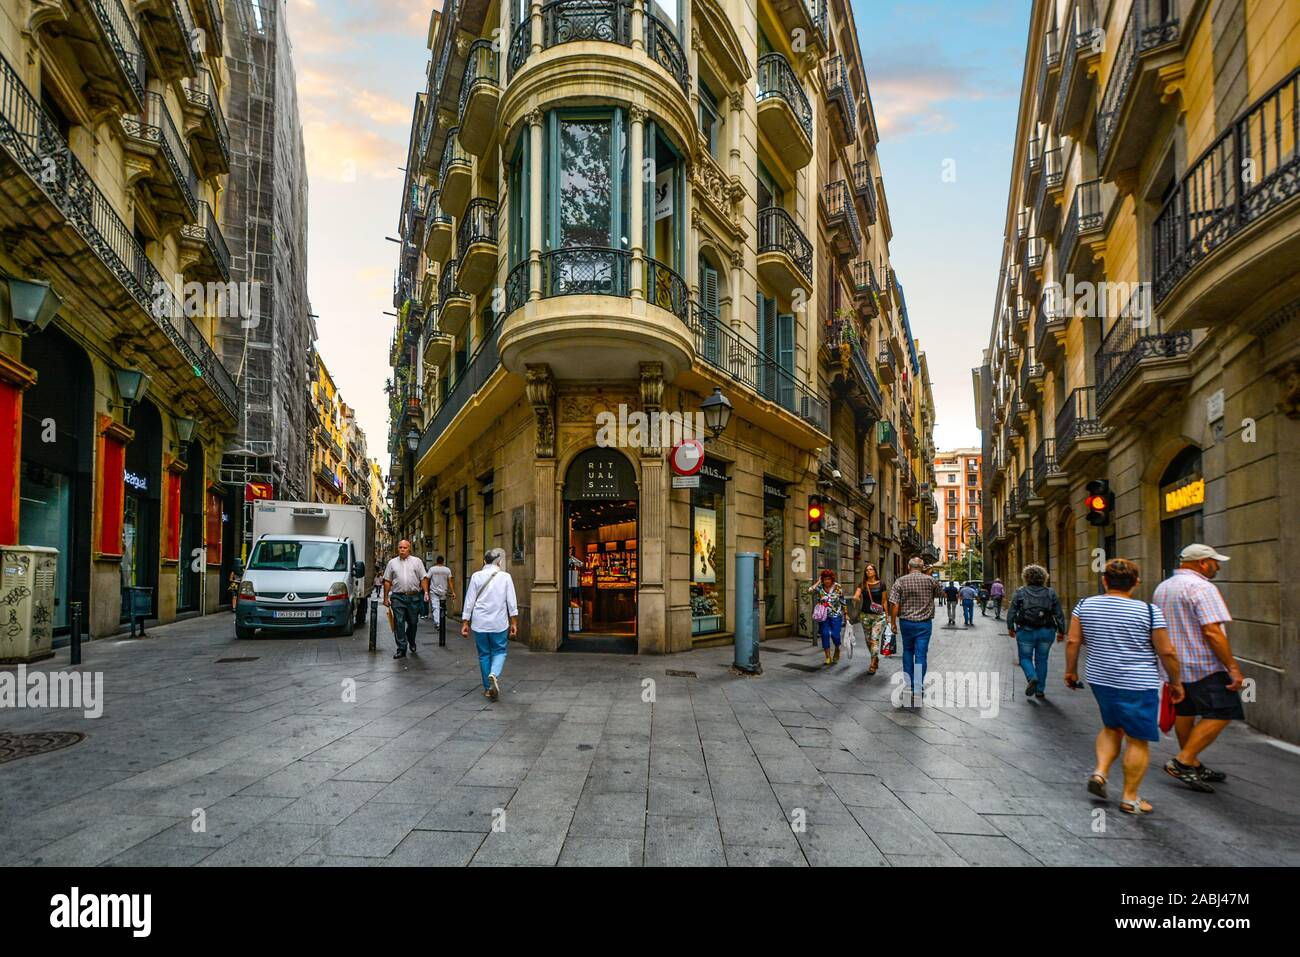 Tourists and locals start their day early as stores open for business at a beautiful intersection of streets in the Gothic Quarter of Barcelona Spain. Stock Photo